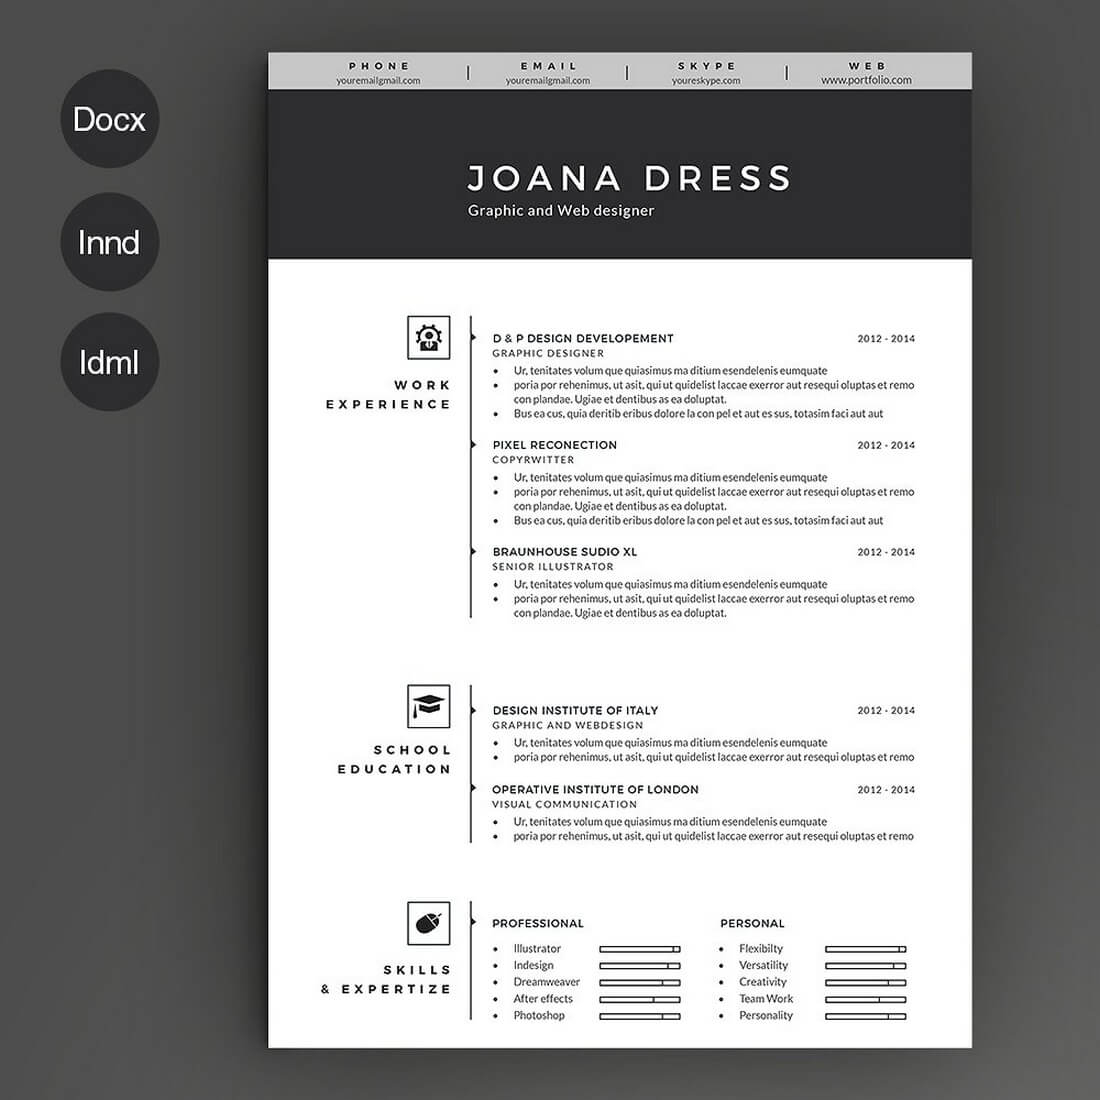 Fine 1 Page Resume Format Download Big 1 Page Resume Or 2 Clean 1 Year Experience Java Resume Format 11x17 Graph Paper Template Young 15 Year Old Funny Resume Yellow15 Year Old Student Resume The Best CV \u0026 Resume Templates: 50 Examples \u2013 Ok Huge